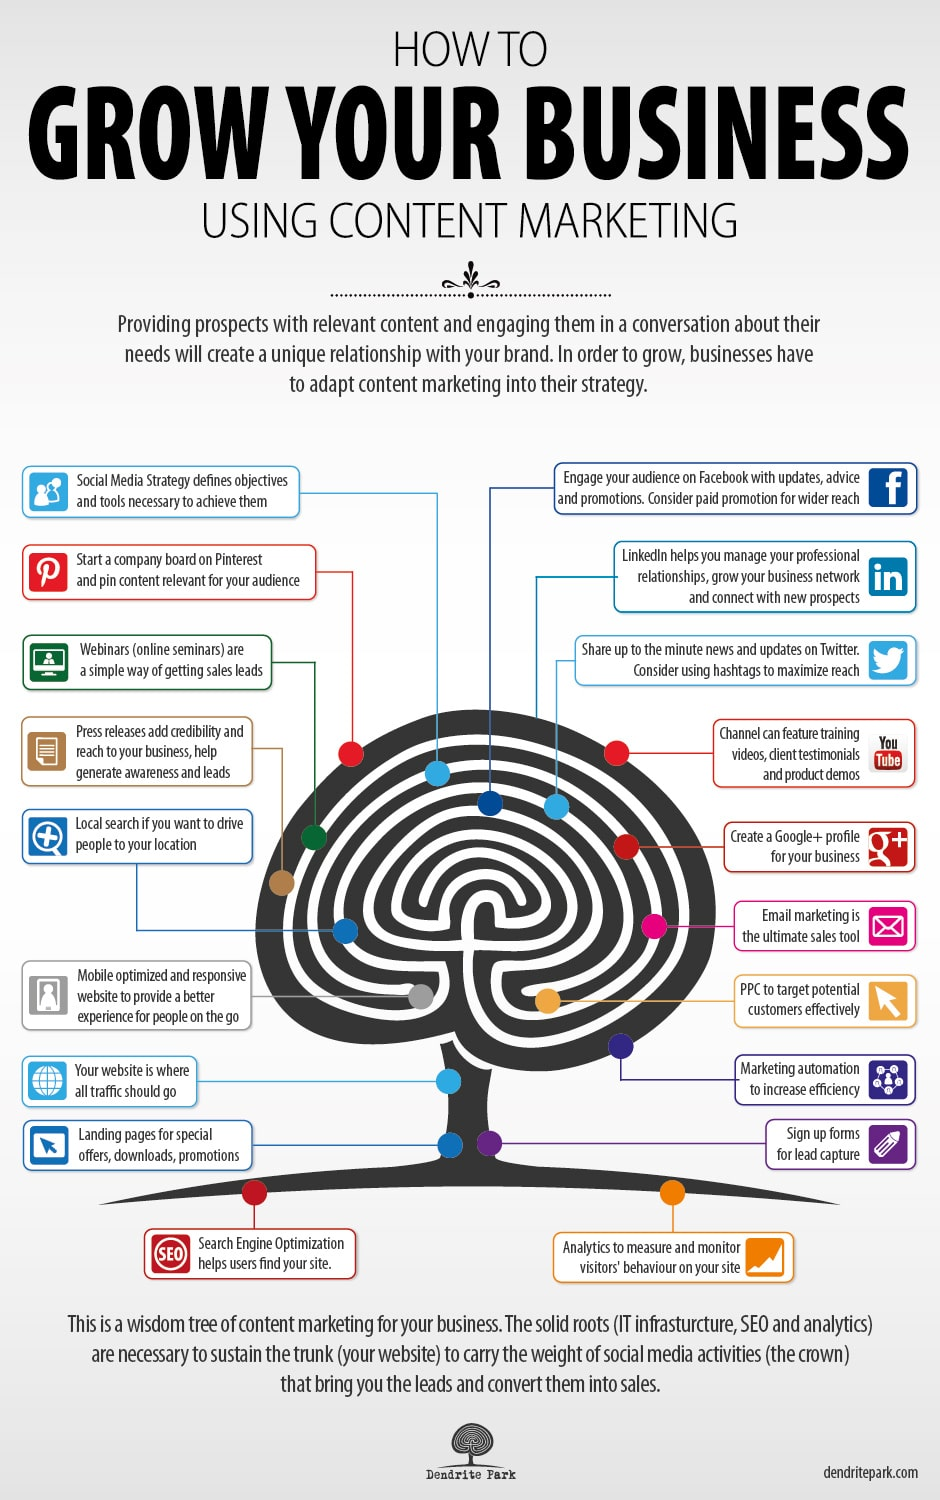 grow-your-business-marketing-infographic